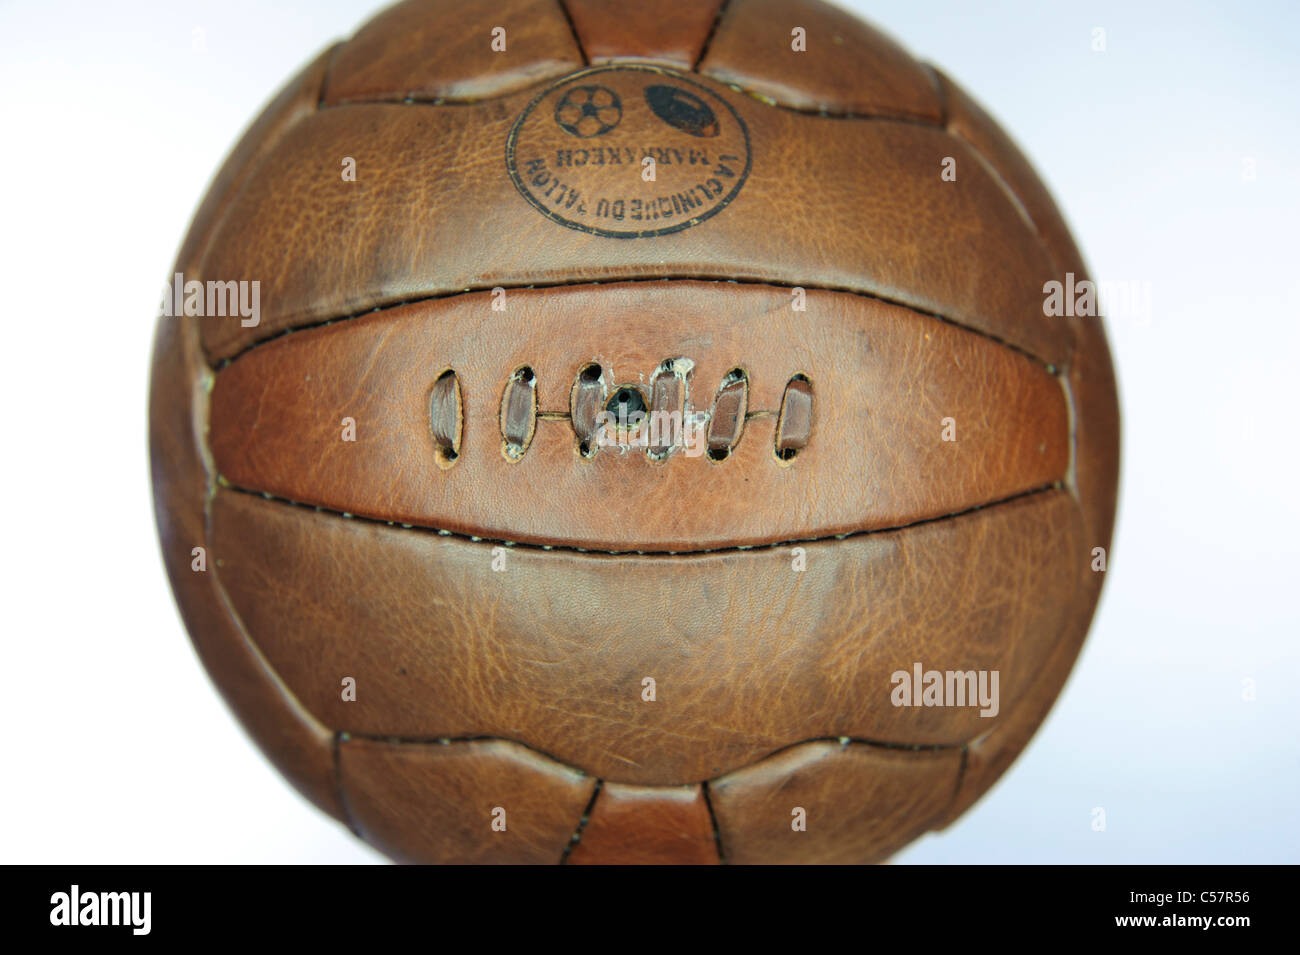 Old fashion leather football. - Stock Image